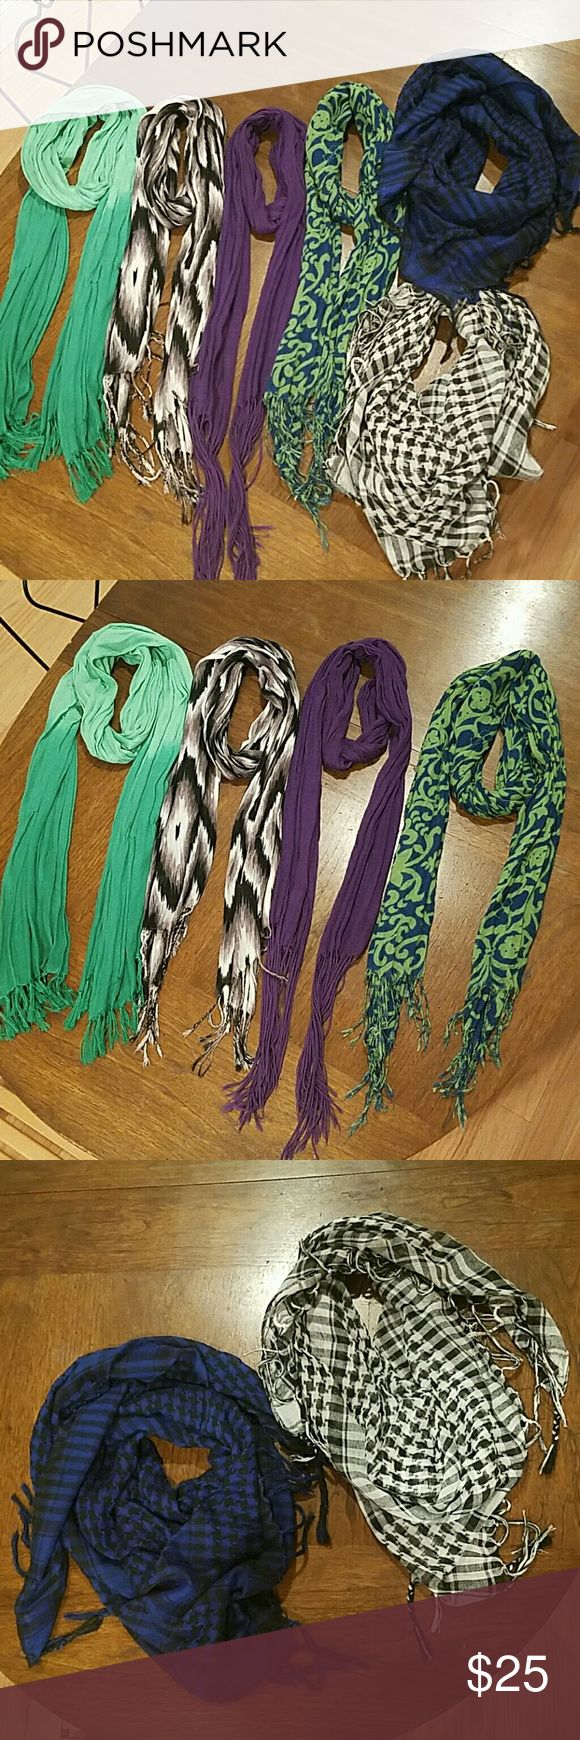 6 fashion scarves and IKEA KOMPLEMENT scarf holder Assortment of 6 fashion scarves and beige IKEA KOMPLEMENT scarf holder. Open to offers :) Accessories Scarves & Wraps